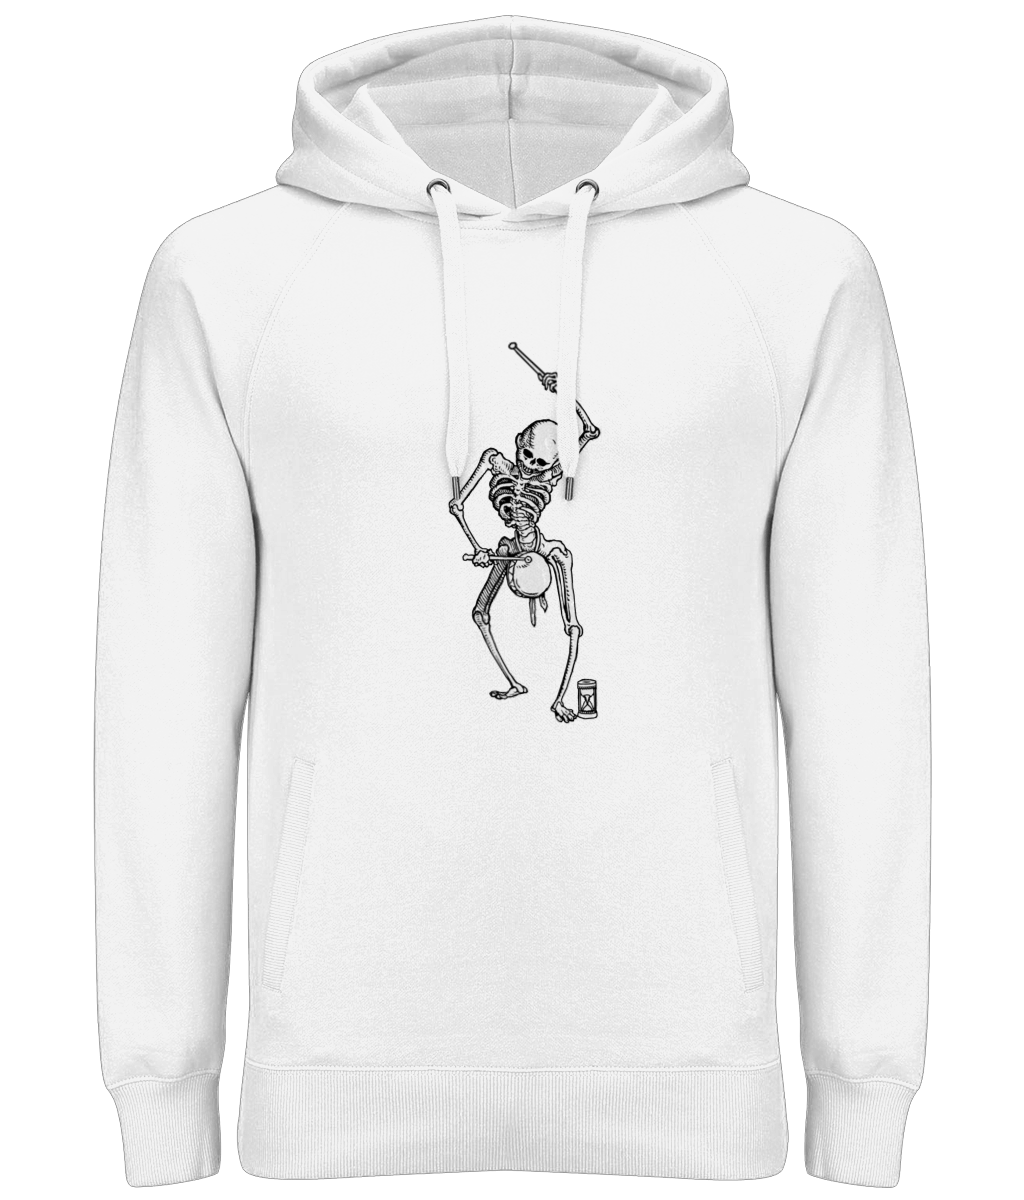 Dance with Death (Grey Skeleton) Ladies / Unisex Hoodie